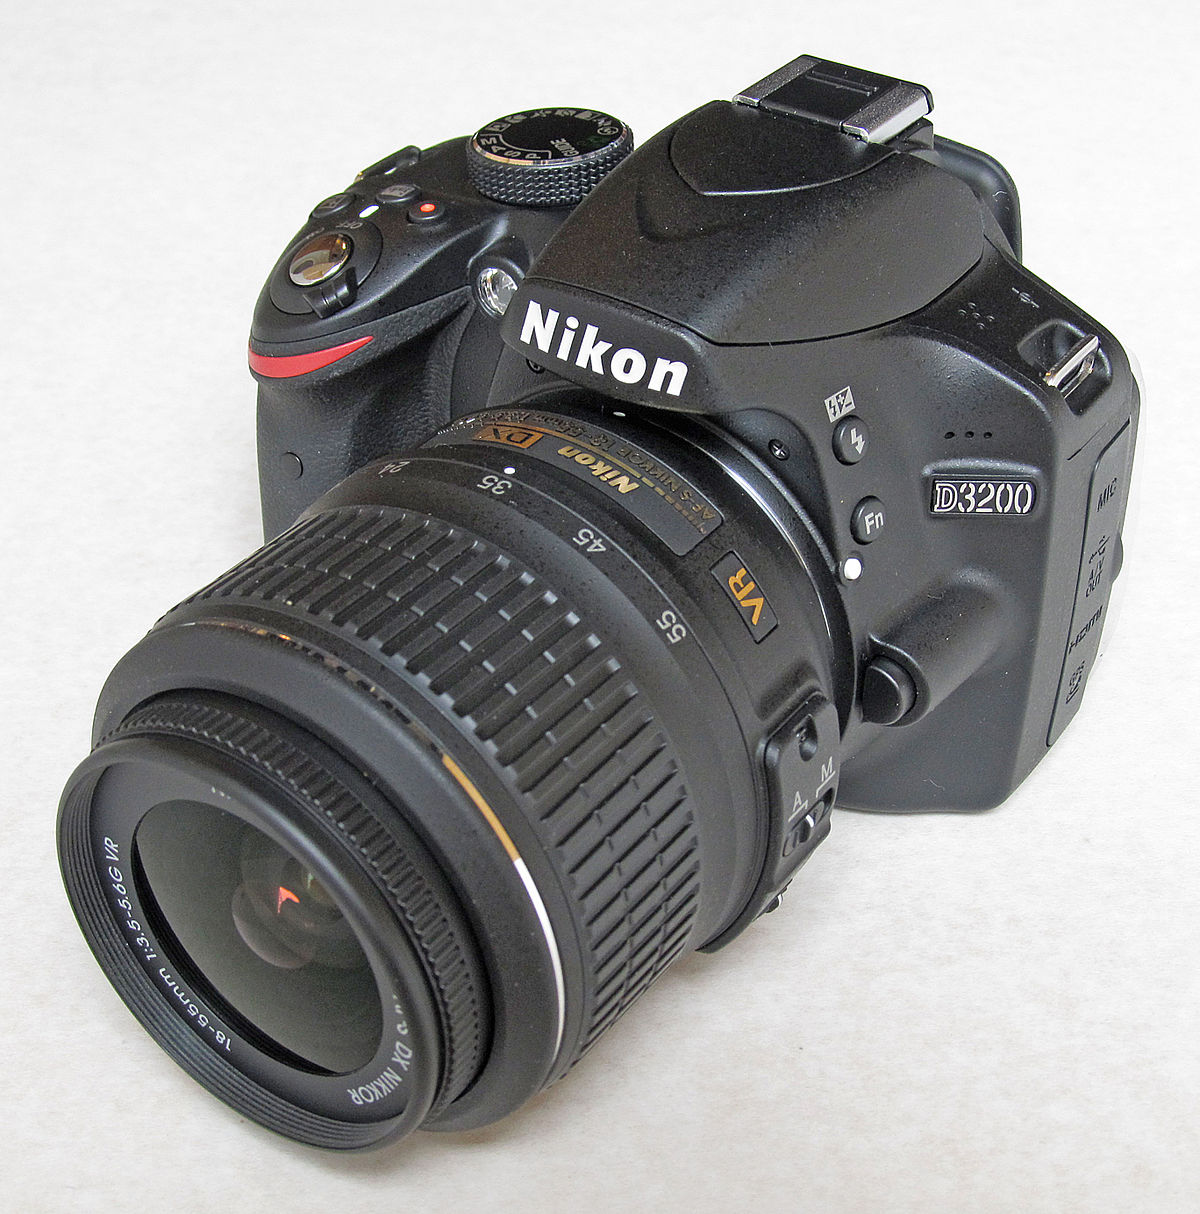 Speed dating canon or nikon digital slr